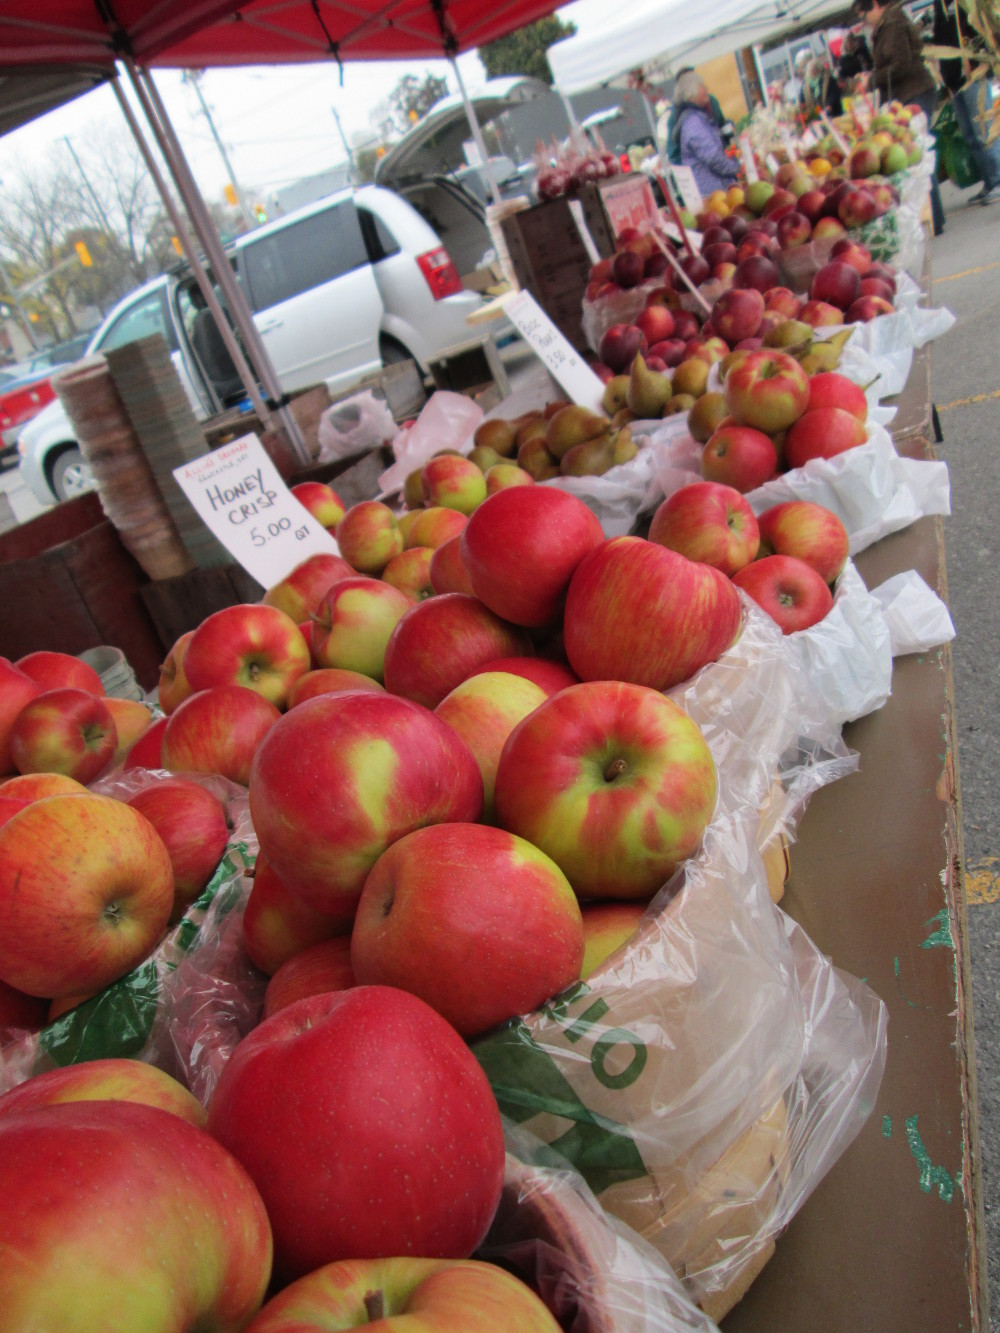 Apples galore at the market! So many apples...so much apple inspiration....